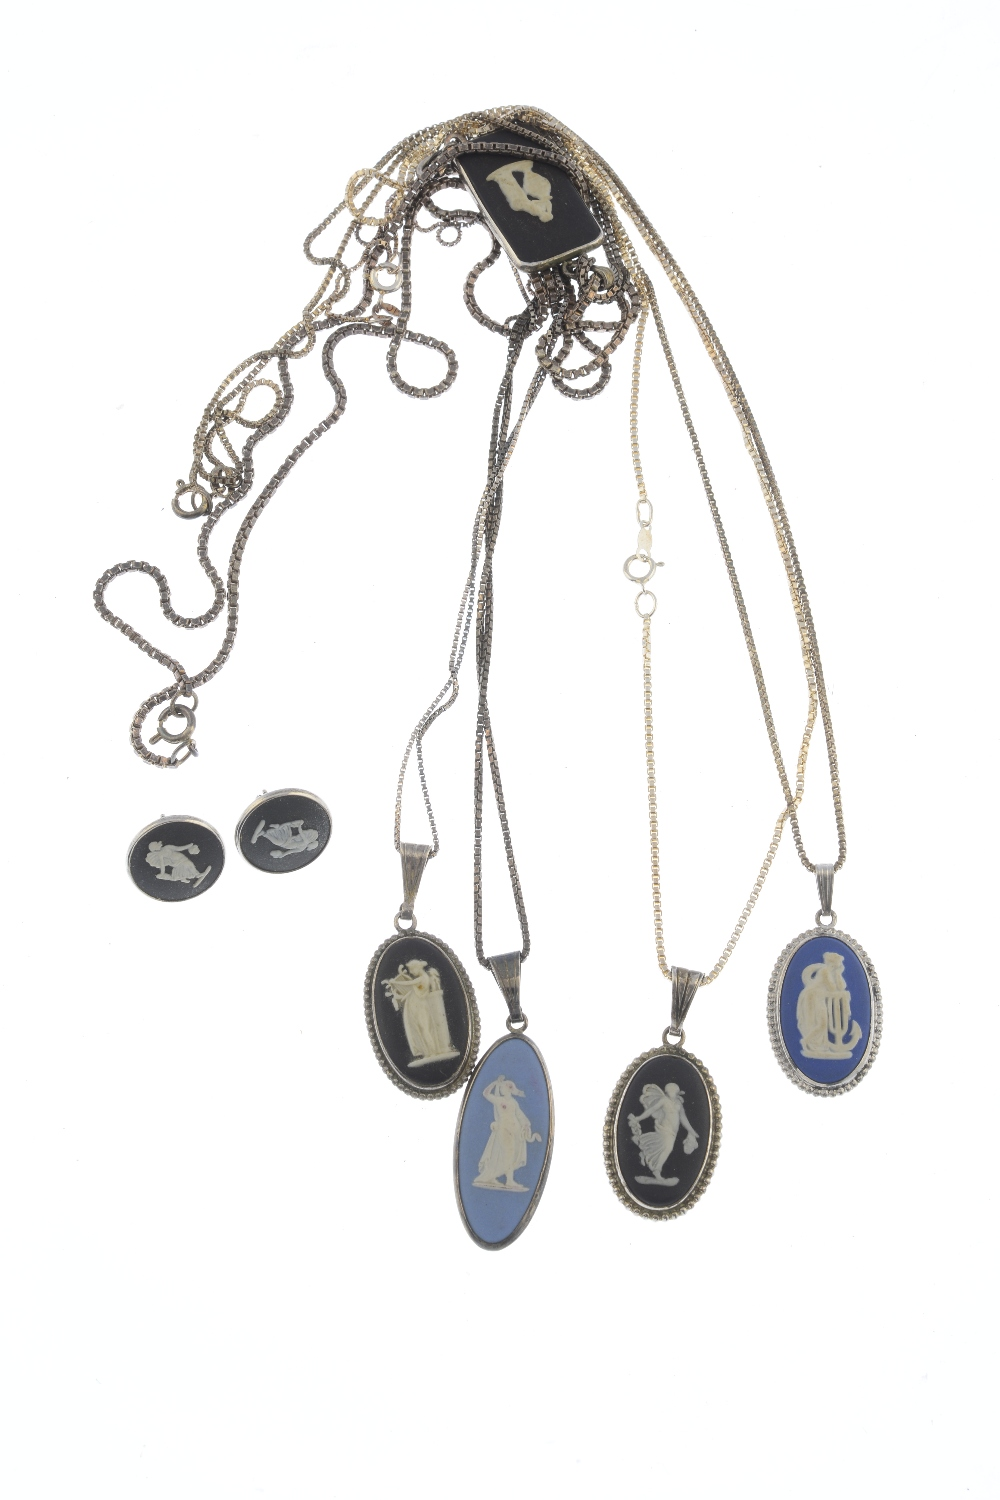 Lot 19 - WEDGWOOD - five pendants and a pair of earrings. To include a pendant featuring a Wedgwood cameo